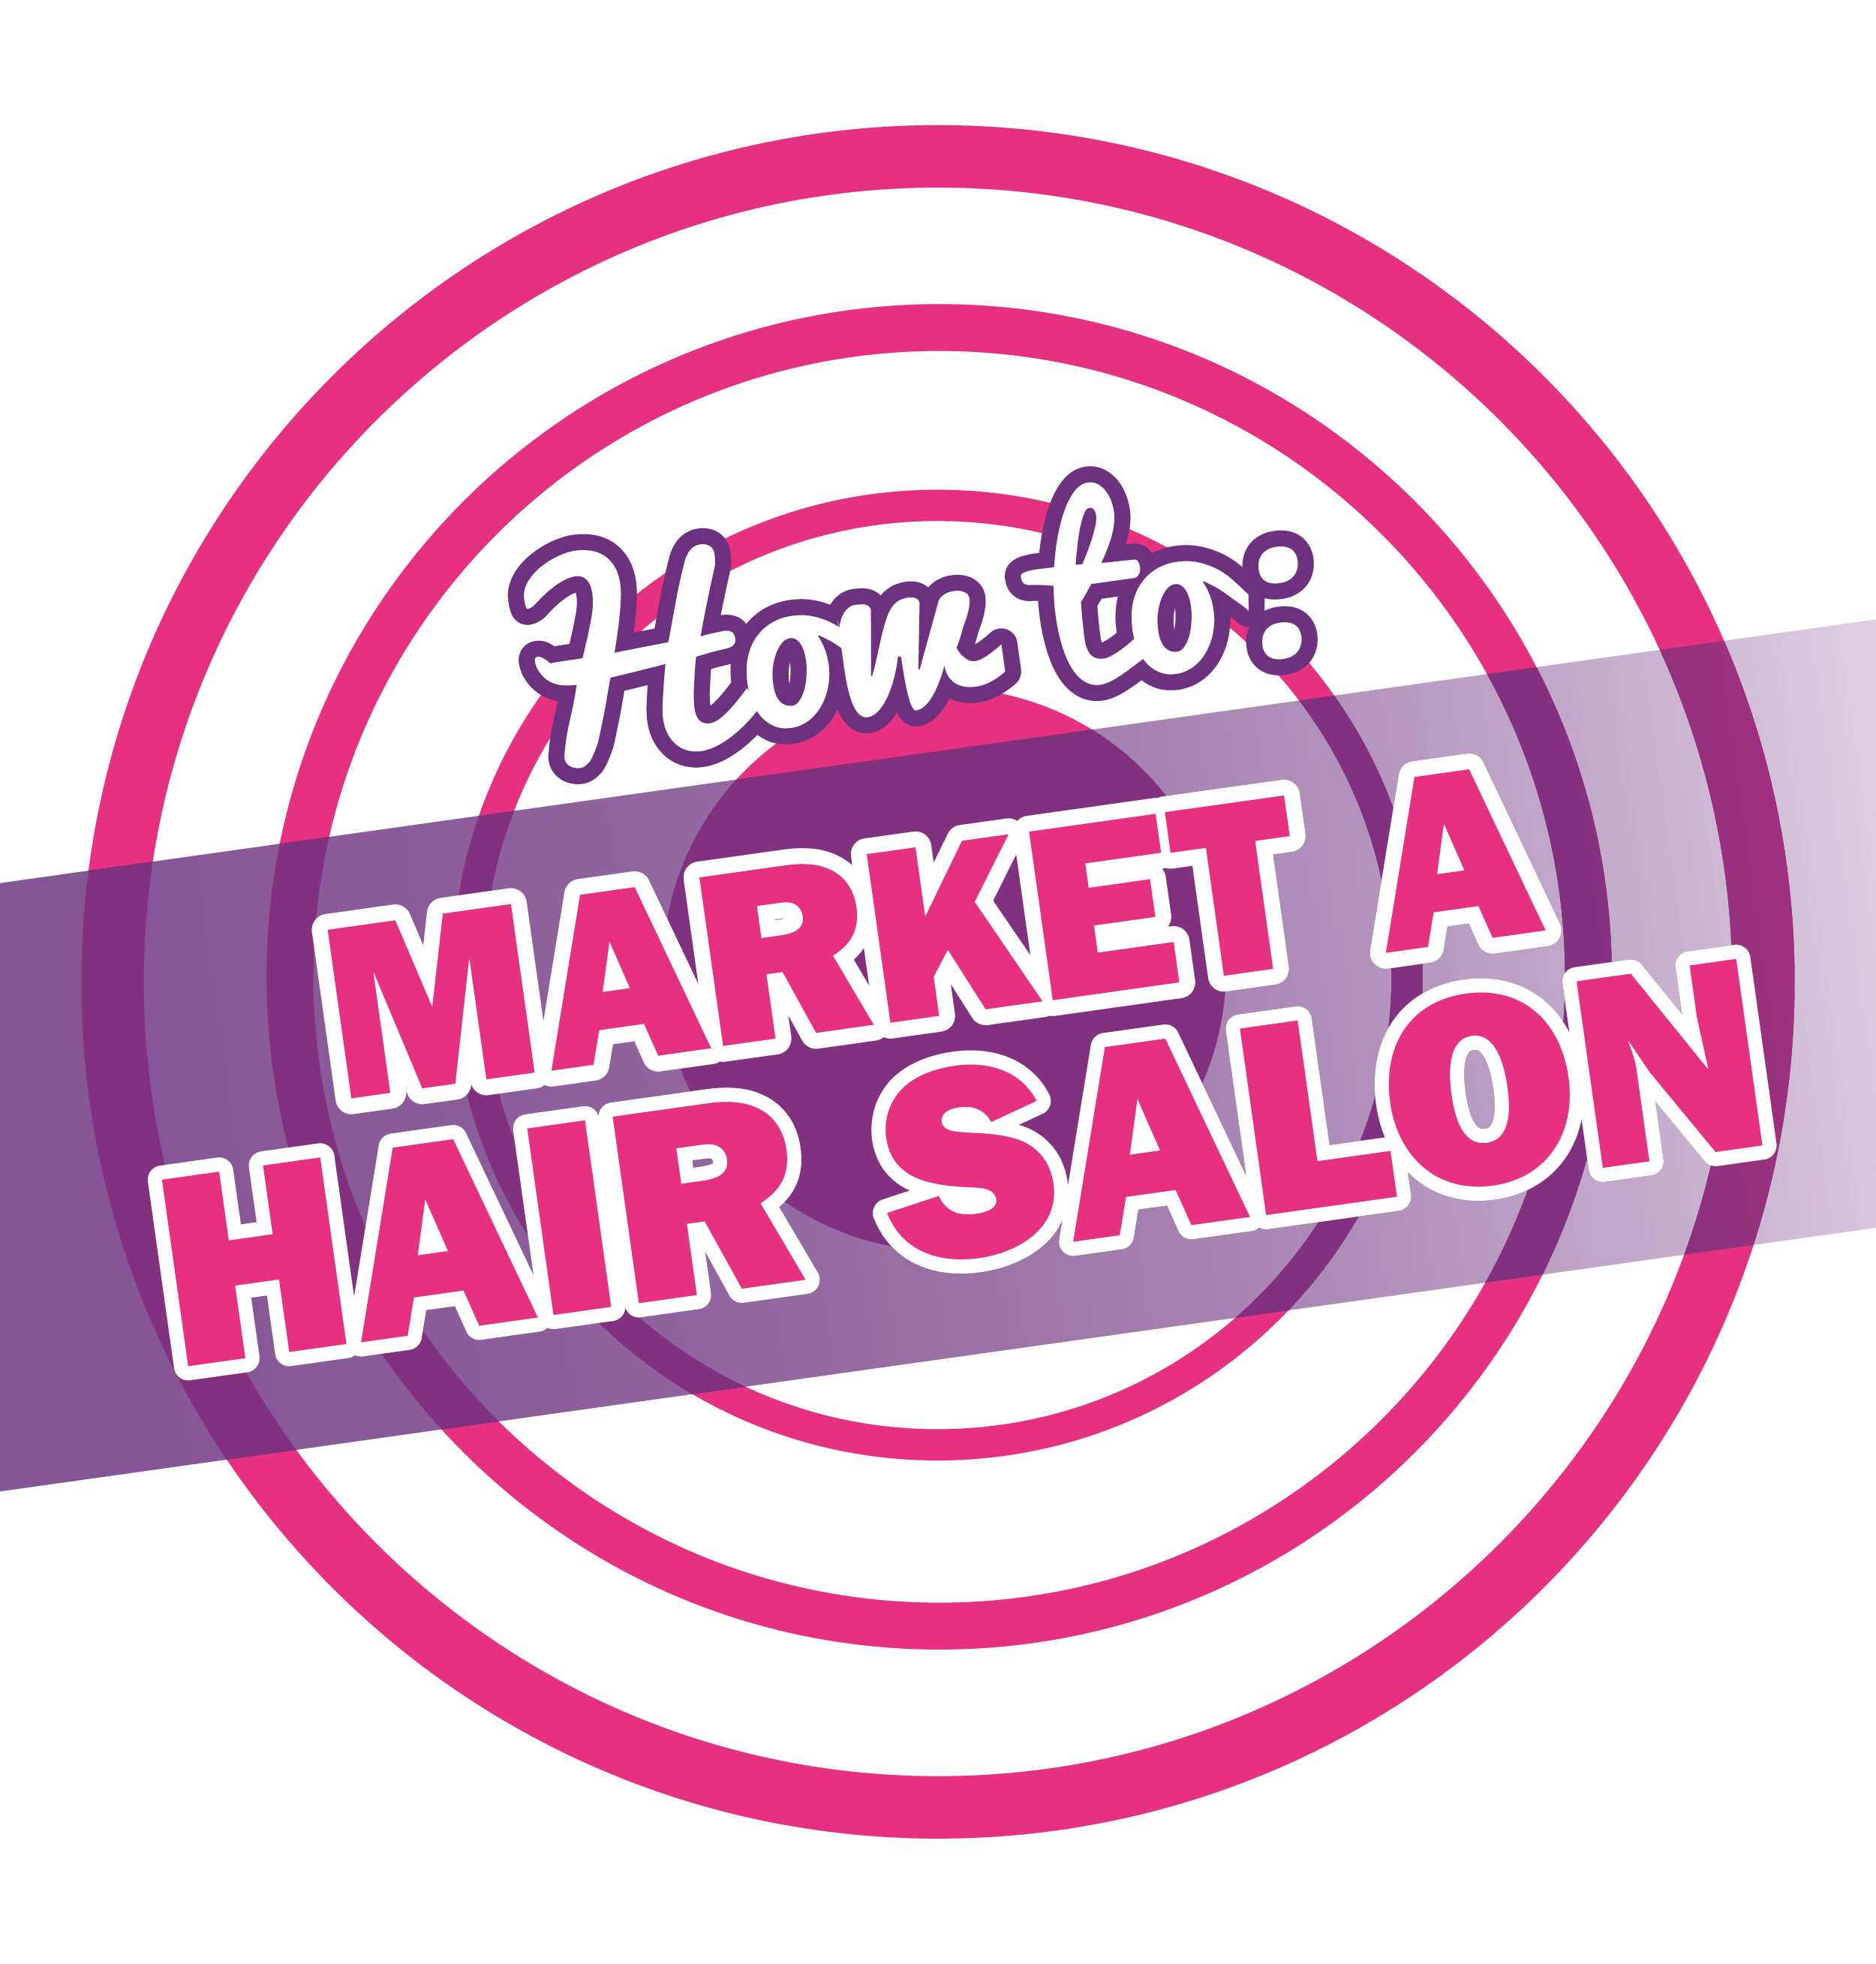 5 more hair salon marketing ideas you can use instantly for Salon marketing